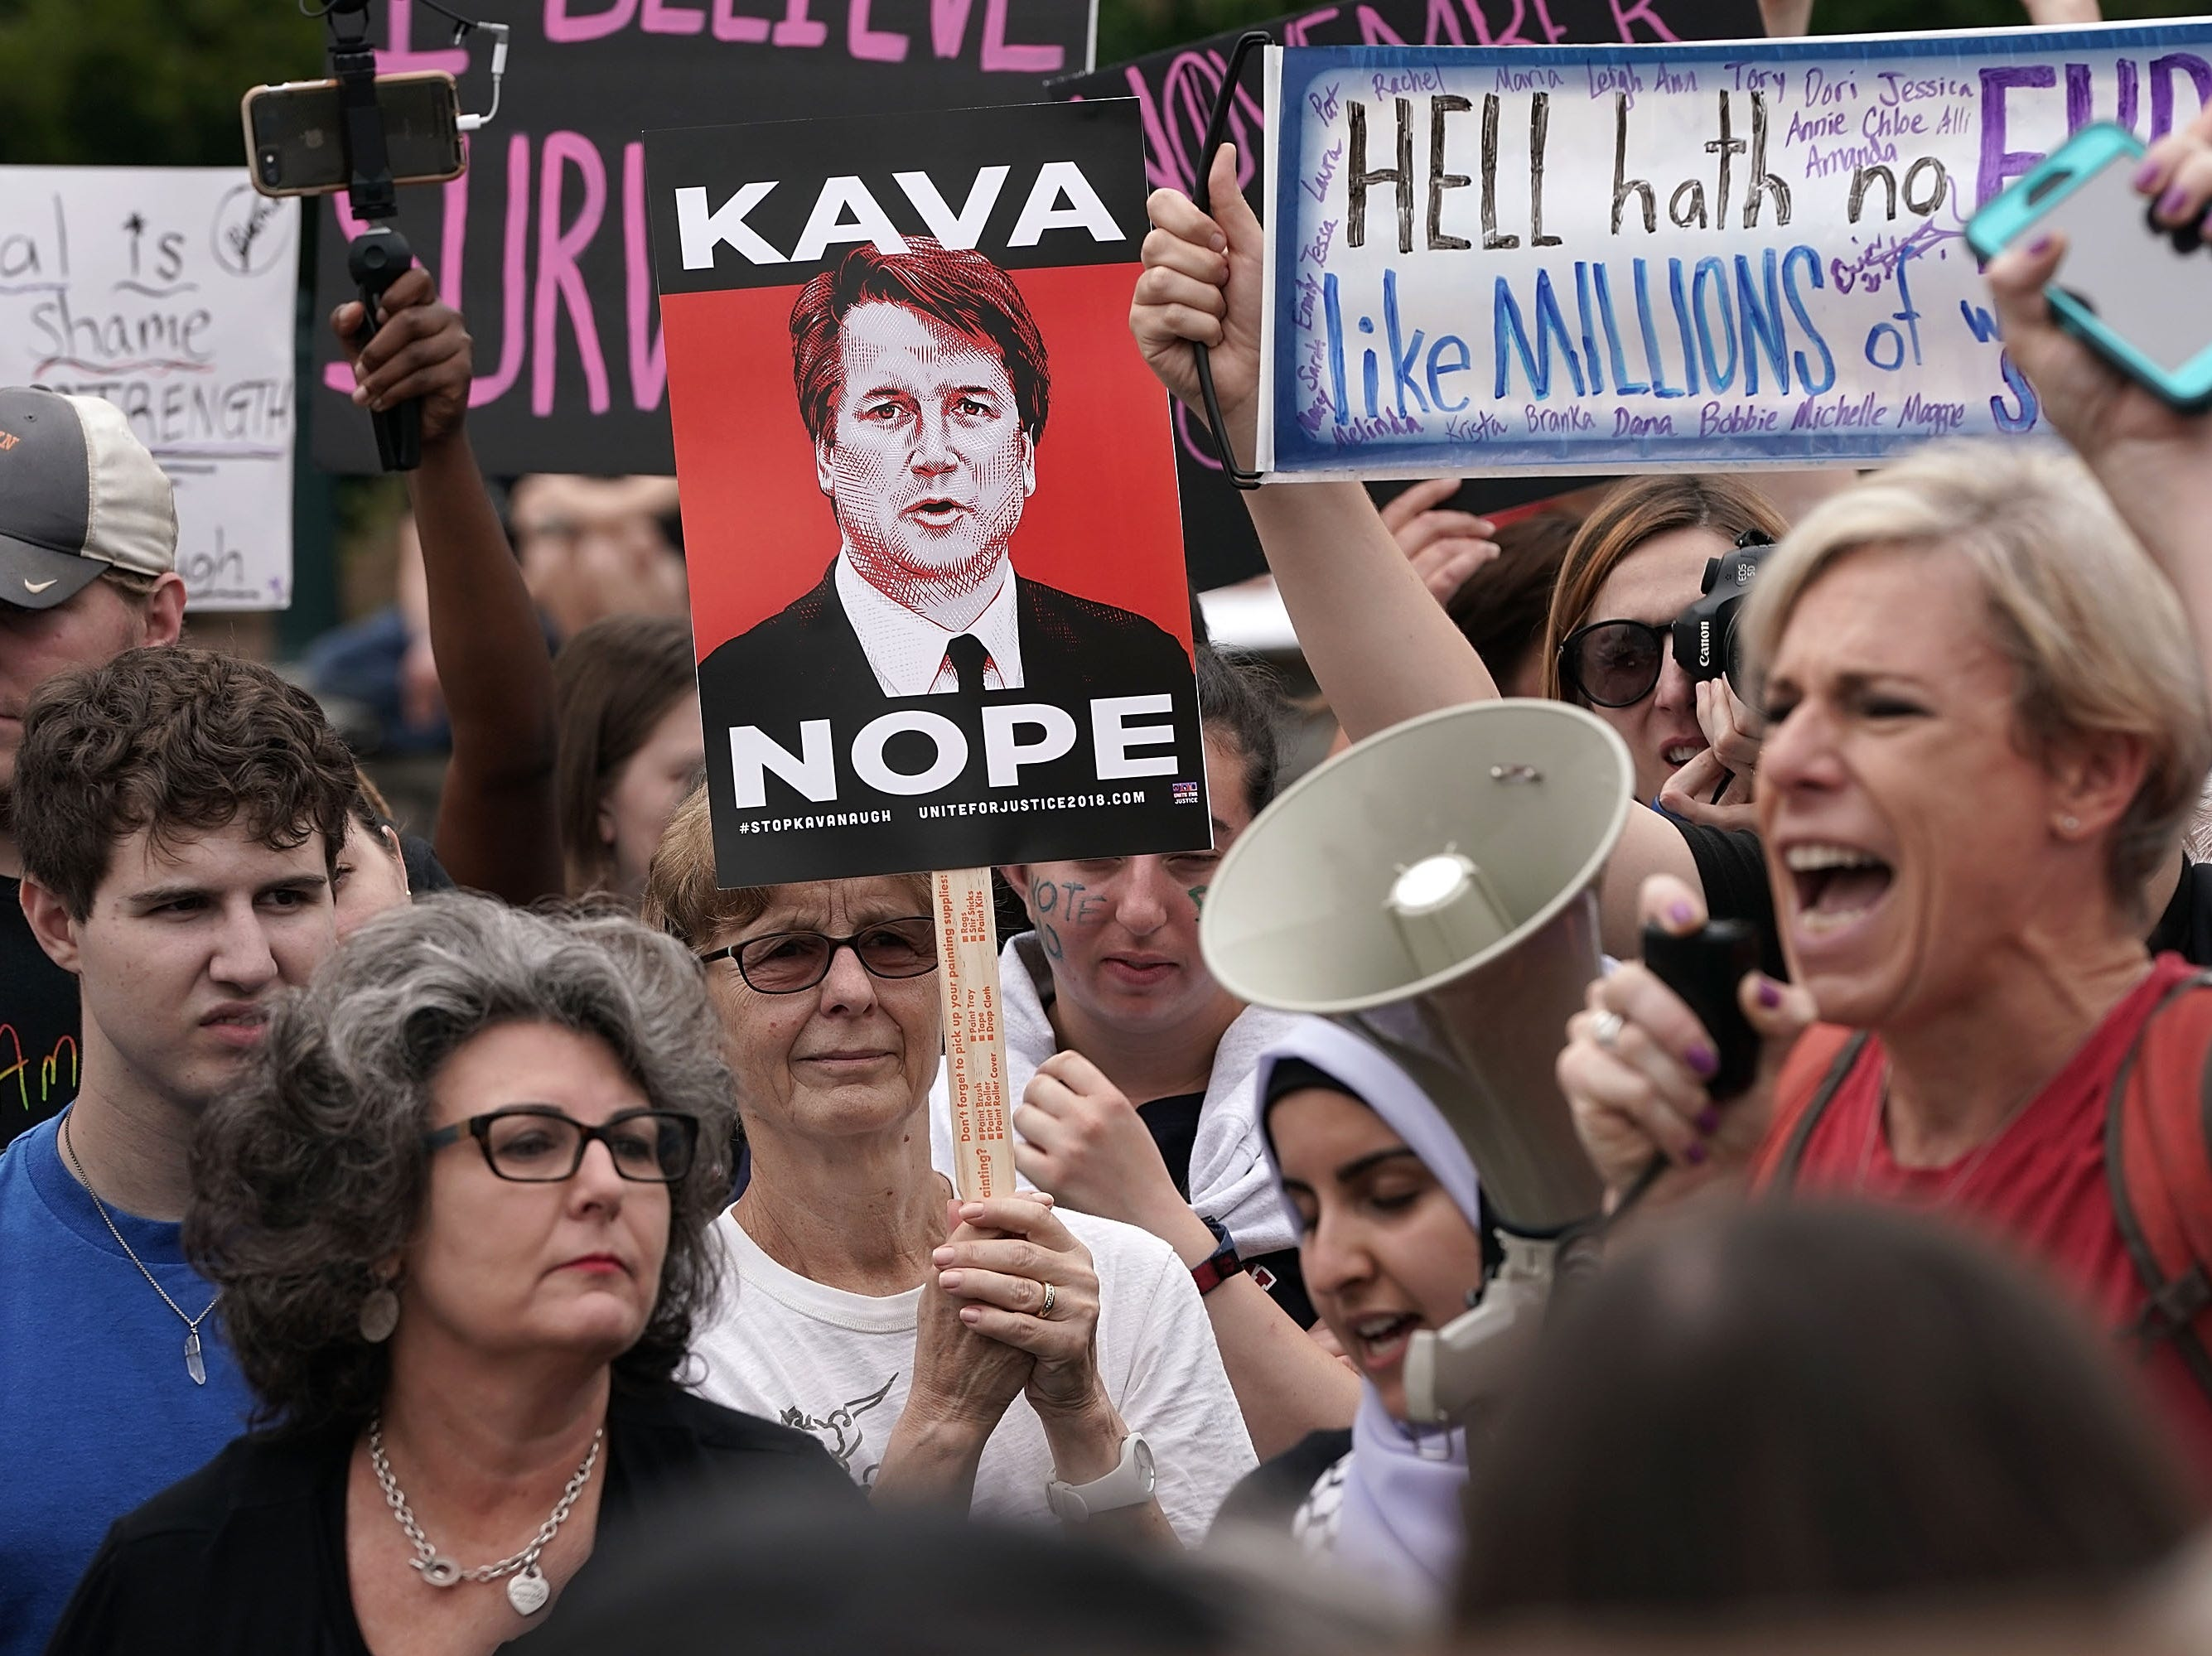 WASHINGTON, DC - OCTOBER 6: Protesters rally against the confirmation of Supreme Court nominee Judge Brett Kavanaugh, outside of the Supreme Court, October 6, 2018 in Washington, DC. The Senate is set to hold a final vote Saturday evening to confirm the nomination of Judge Brett Kavanaugh to the U.S. Supreme Court. (Photo by Alex Wong/Getty Images)